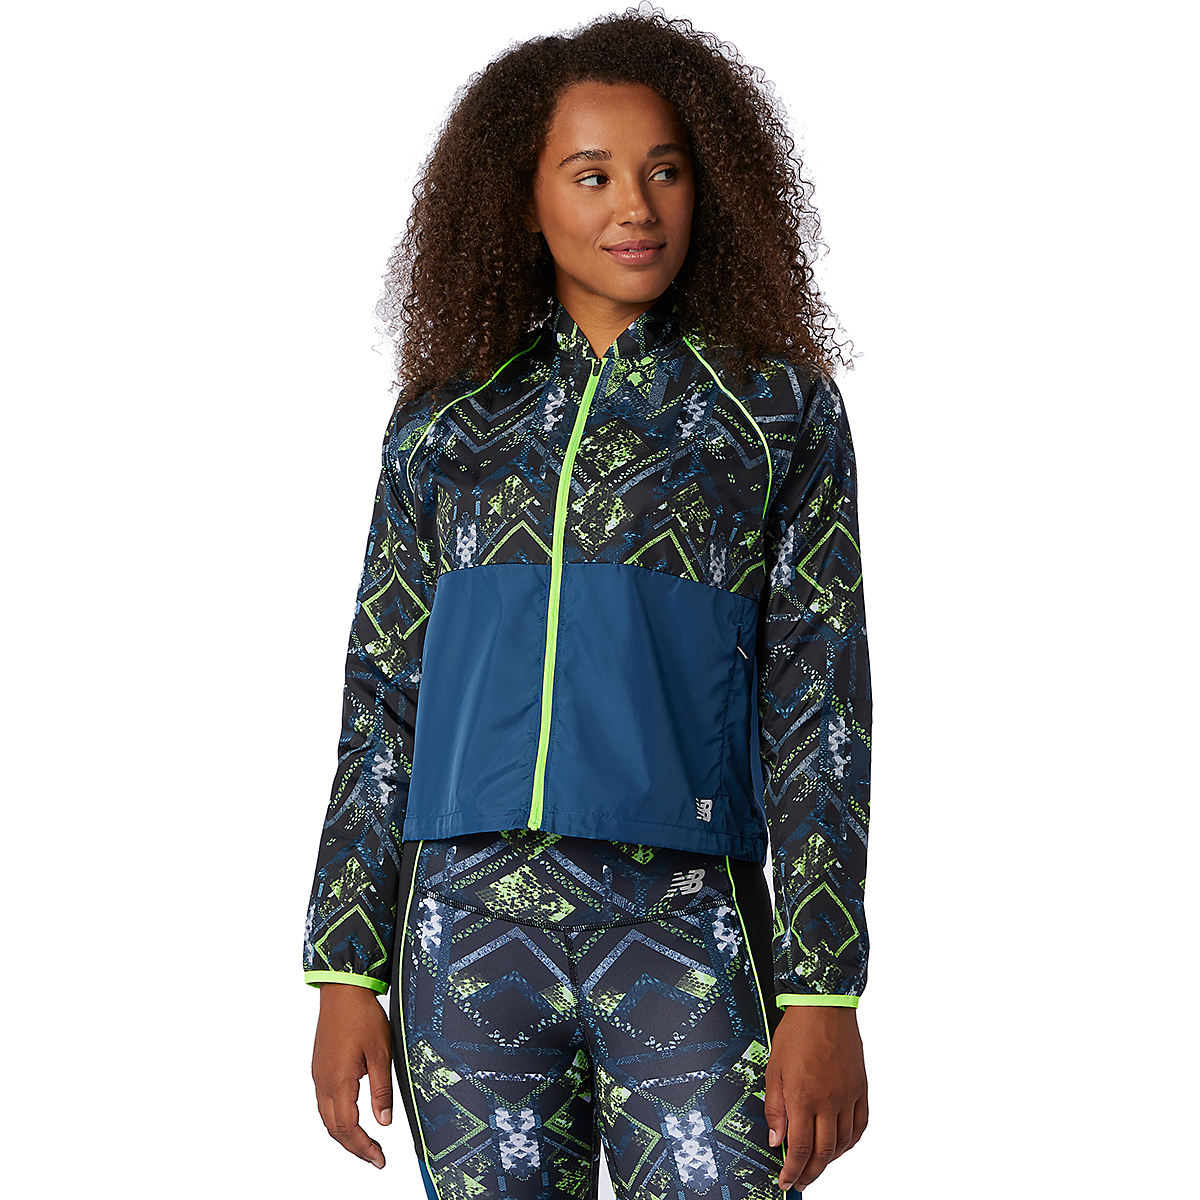 Women's New Balance Printed Fast Flight Jacket - Color: Print - Size: XS, Print, large, image 1